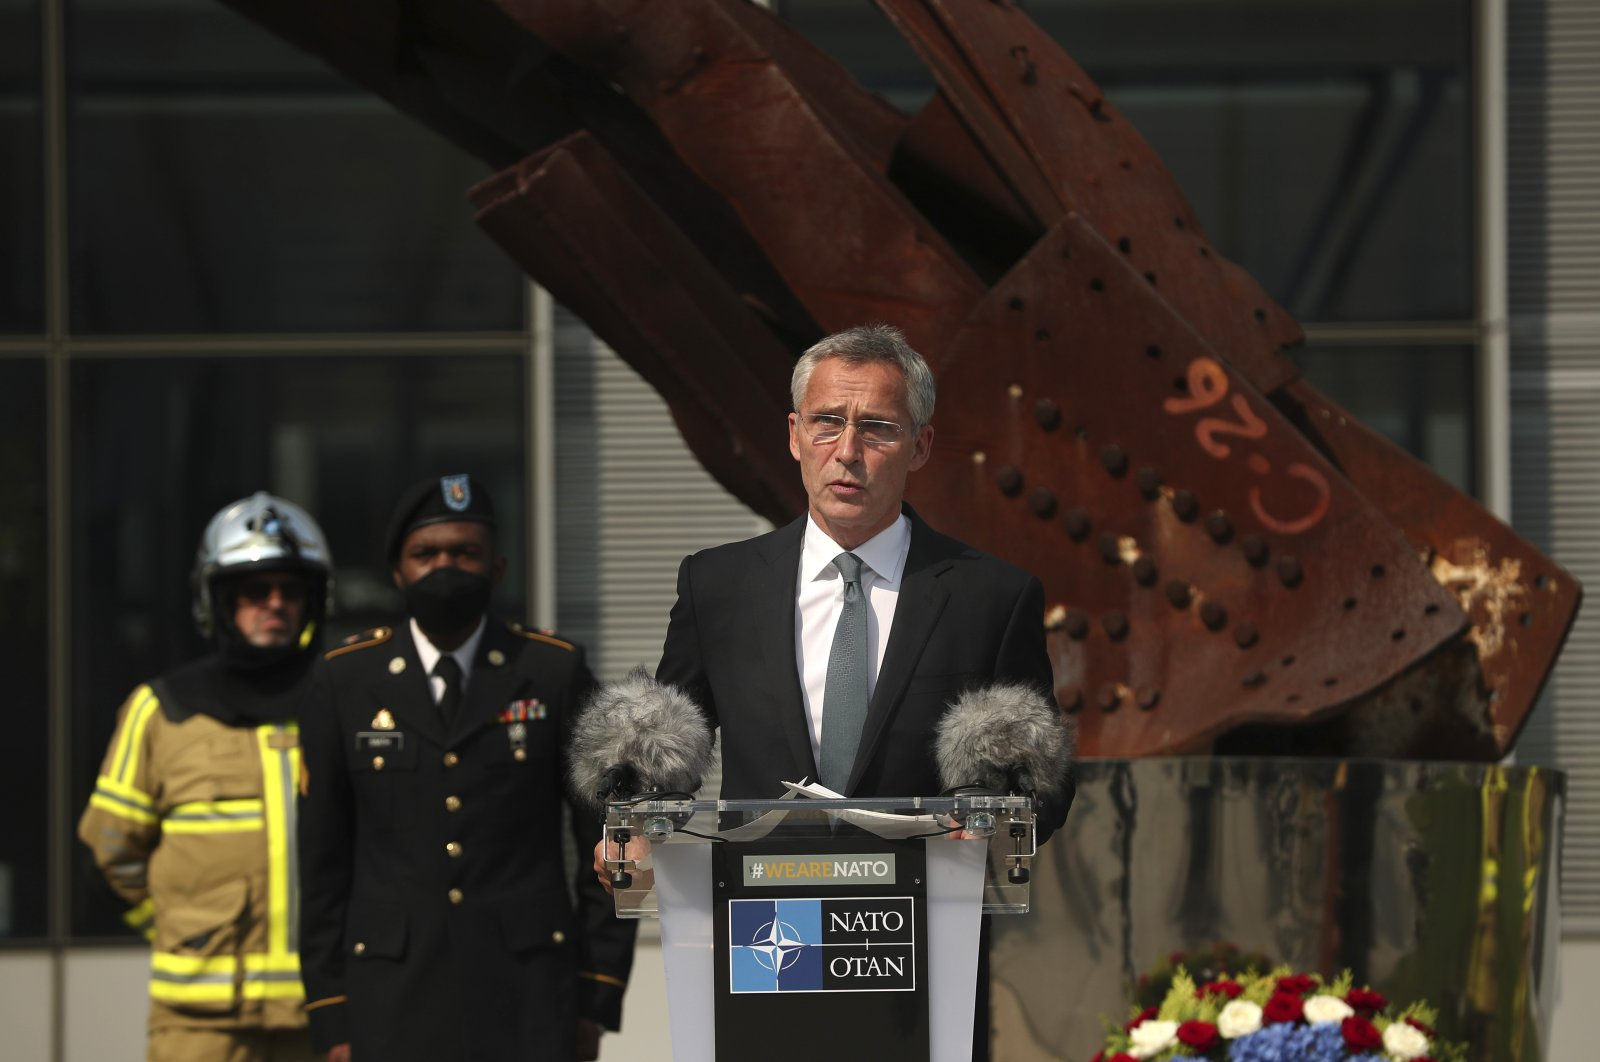 NATO Secretary-General Jens Stoltenberg speaks during a ceremony marking the 19th anniversary of the Sept. 11, 2001 attacks in New York City, at NATO headquarters in Brussels, Sept. 11, 2020. (AP Photo)